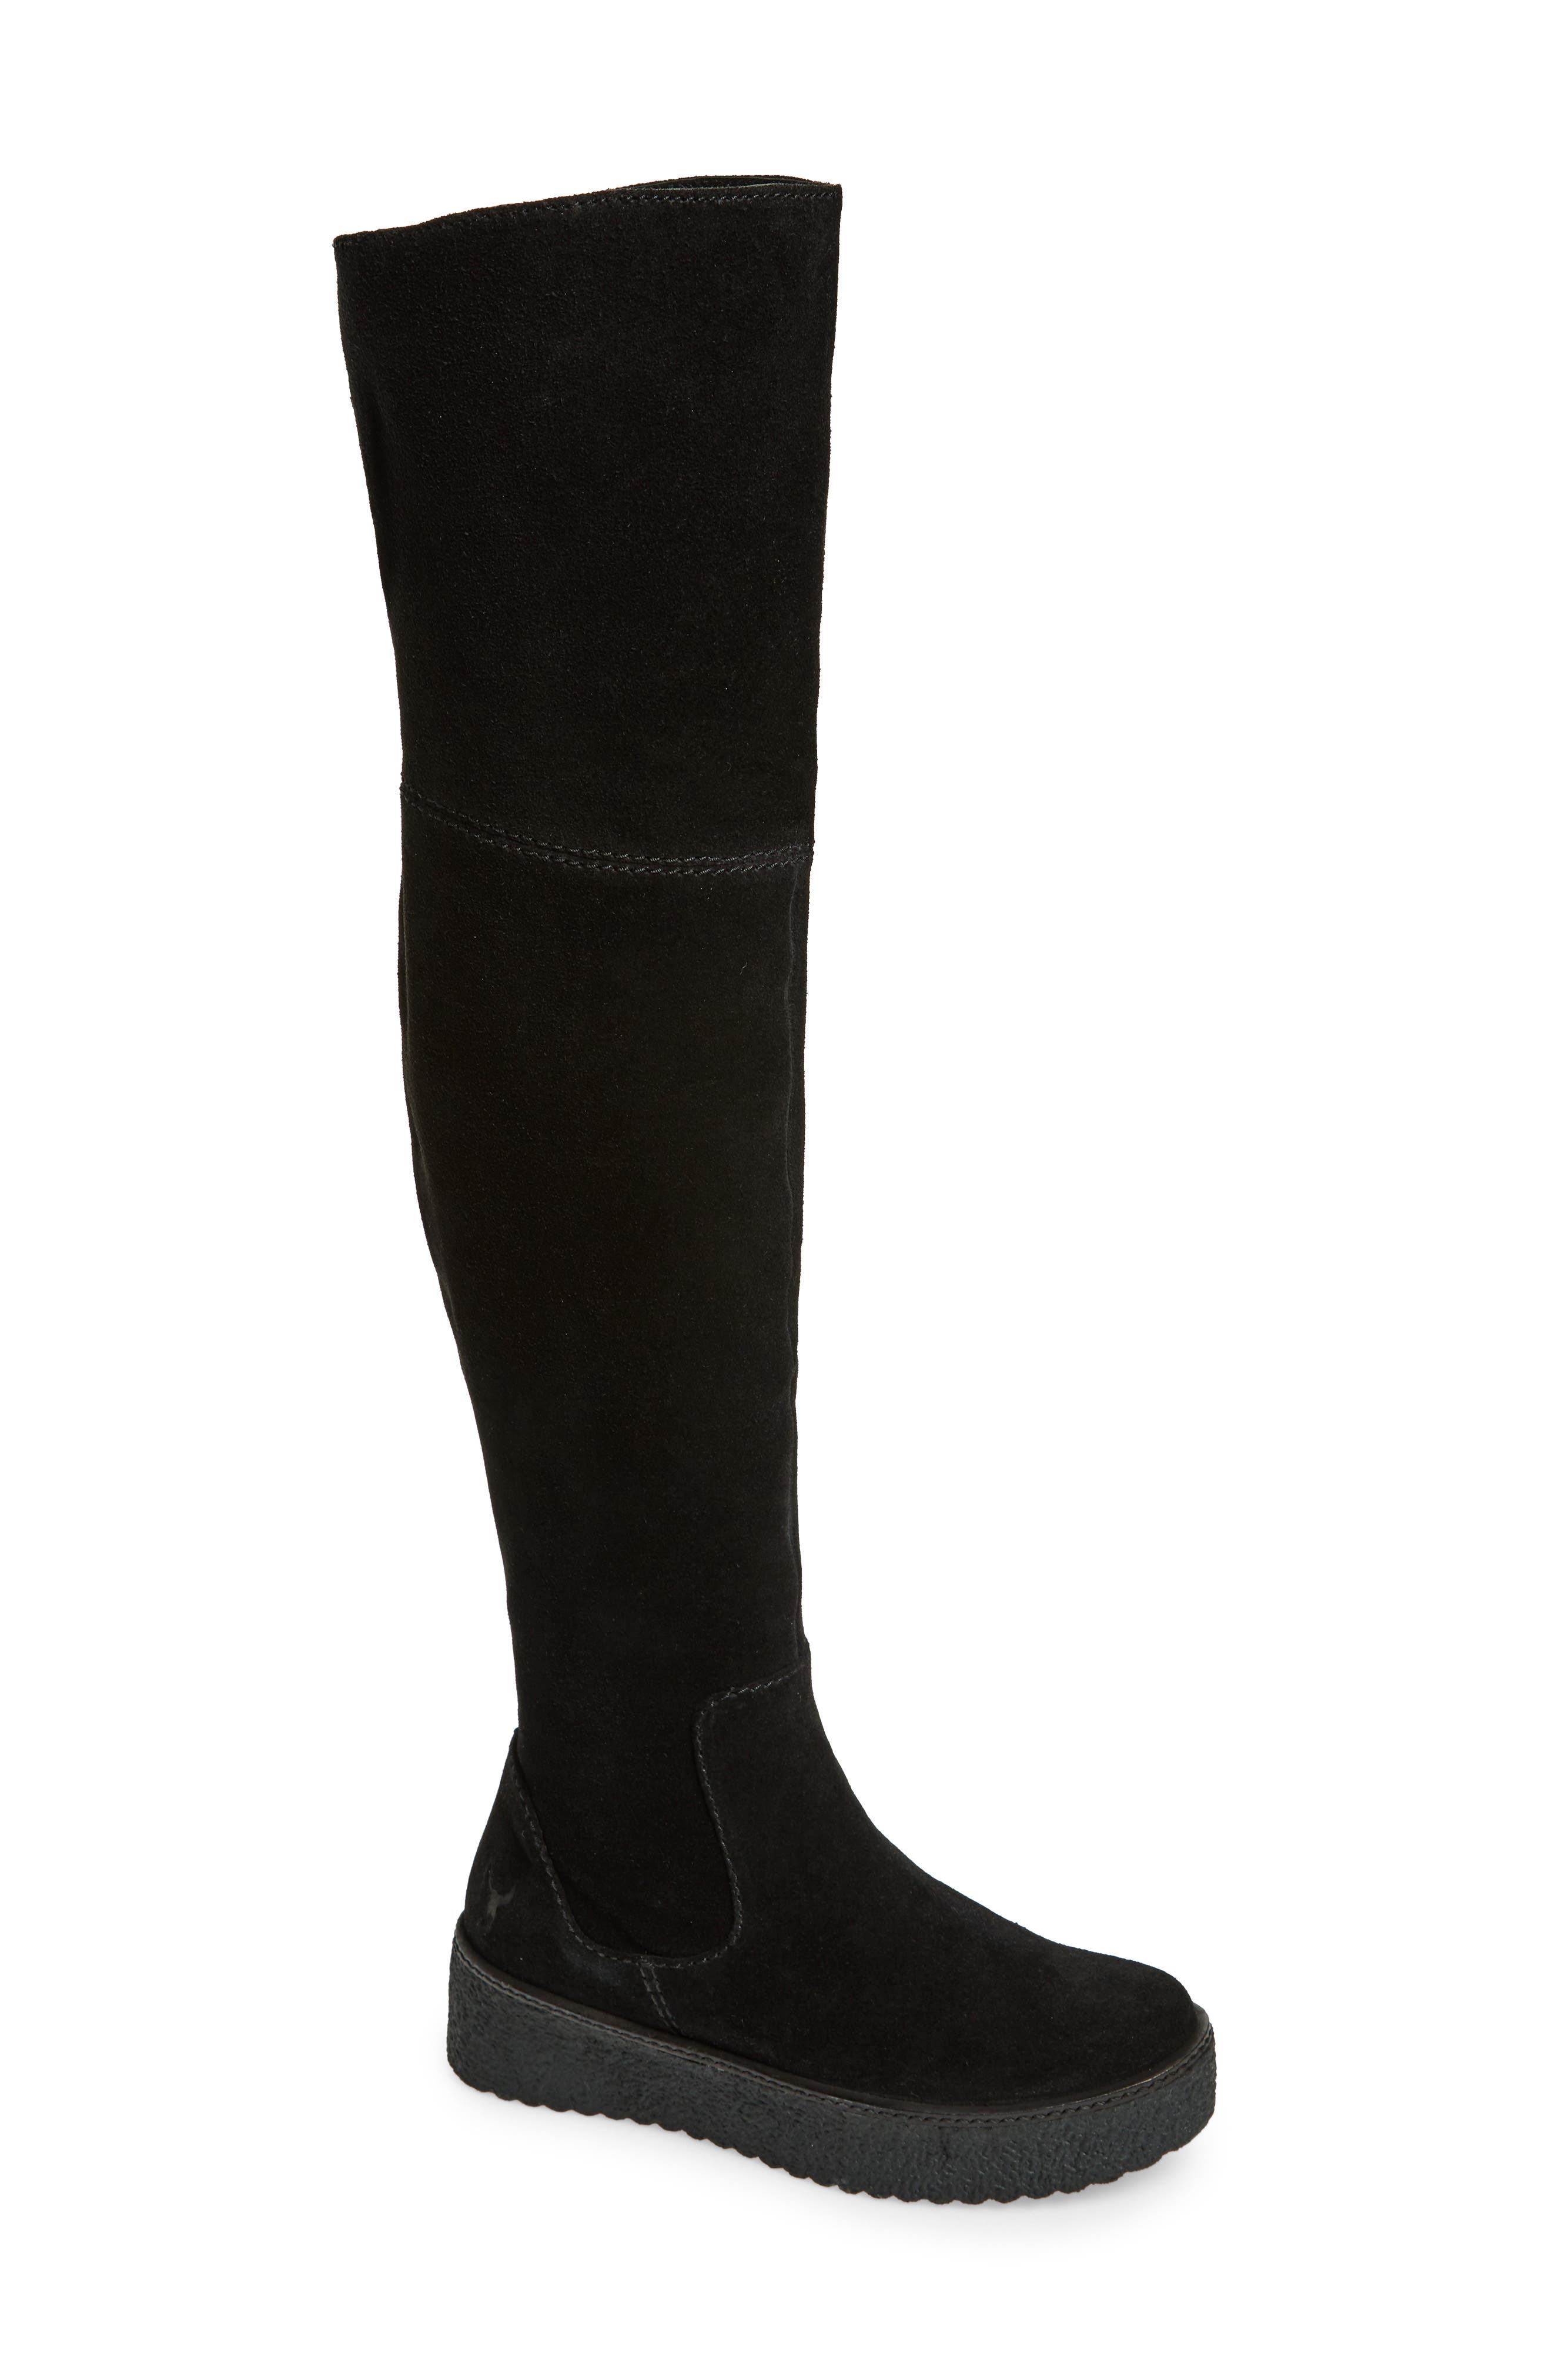 Tazza Over the Knee Boot,                         Main,                         color, Black Suede